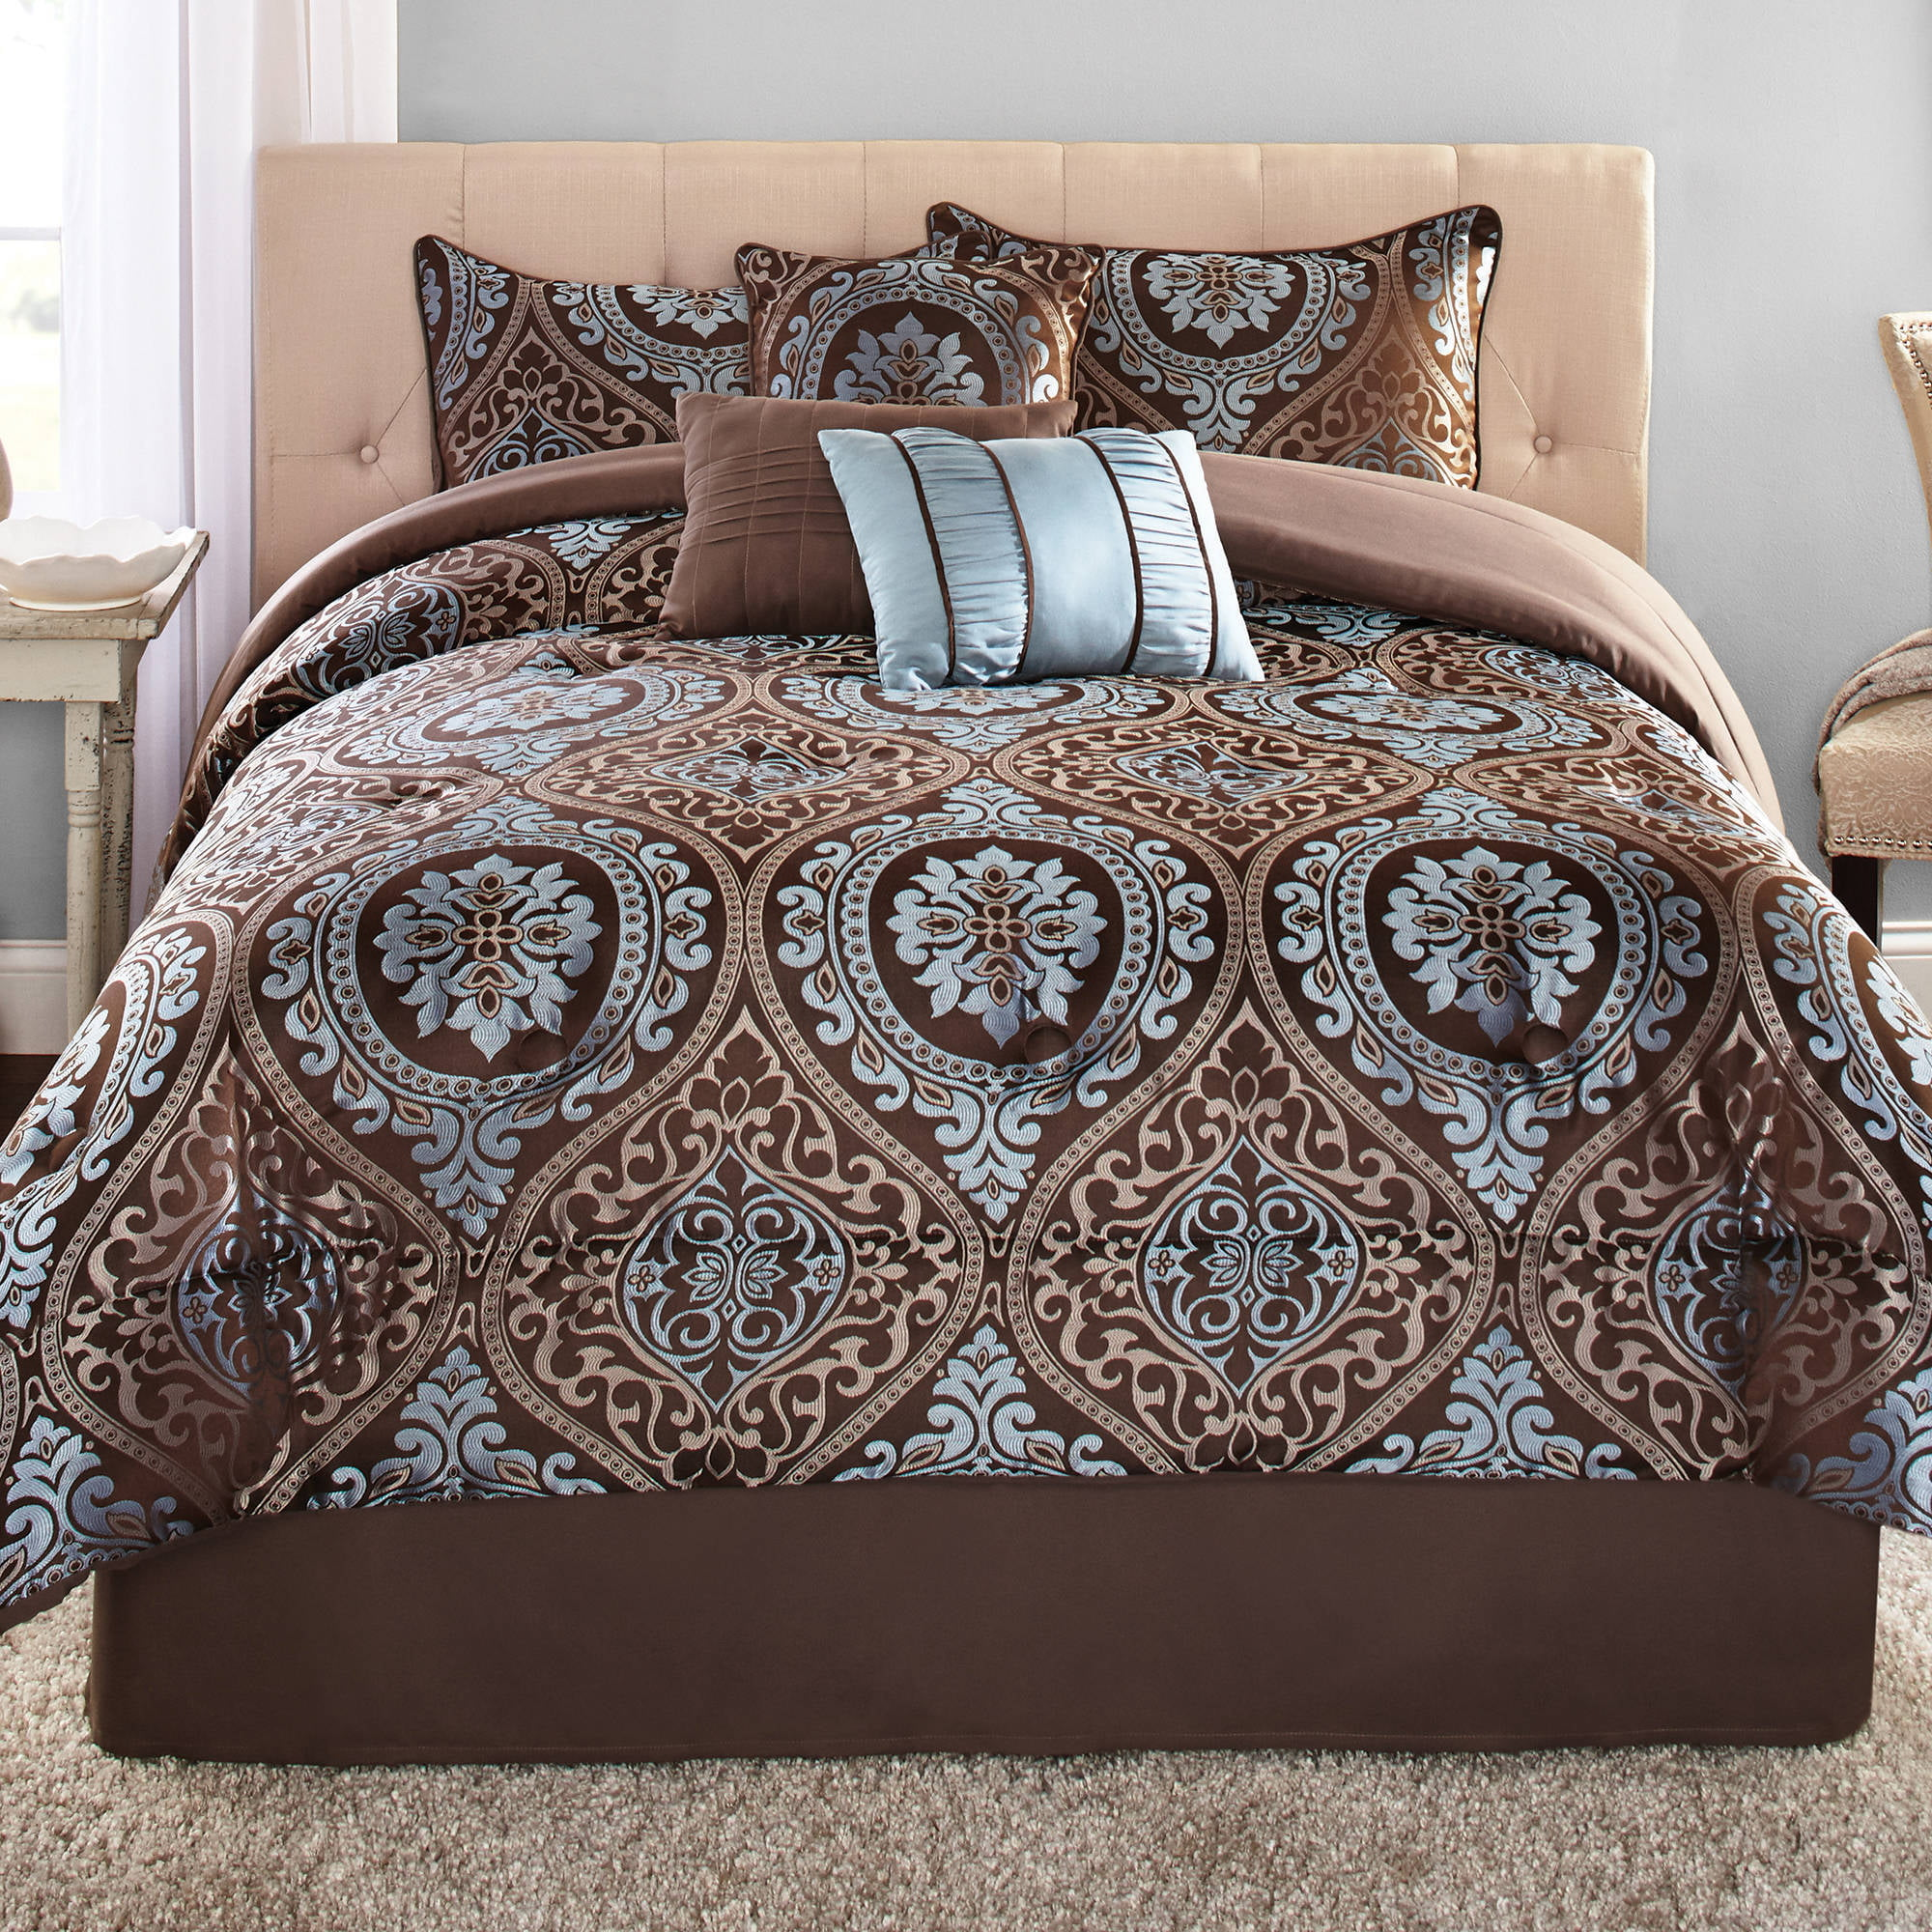 king bedding blue quilt black info naturalsuccess white and toile throw quilted dorma quilts sale